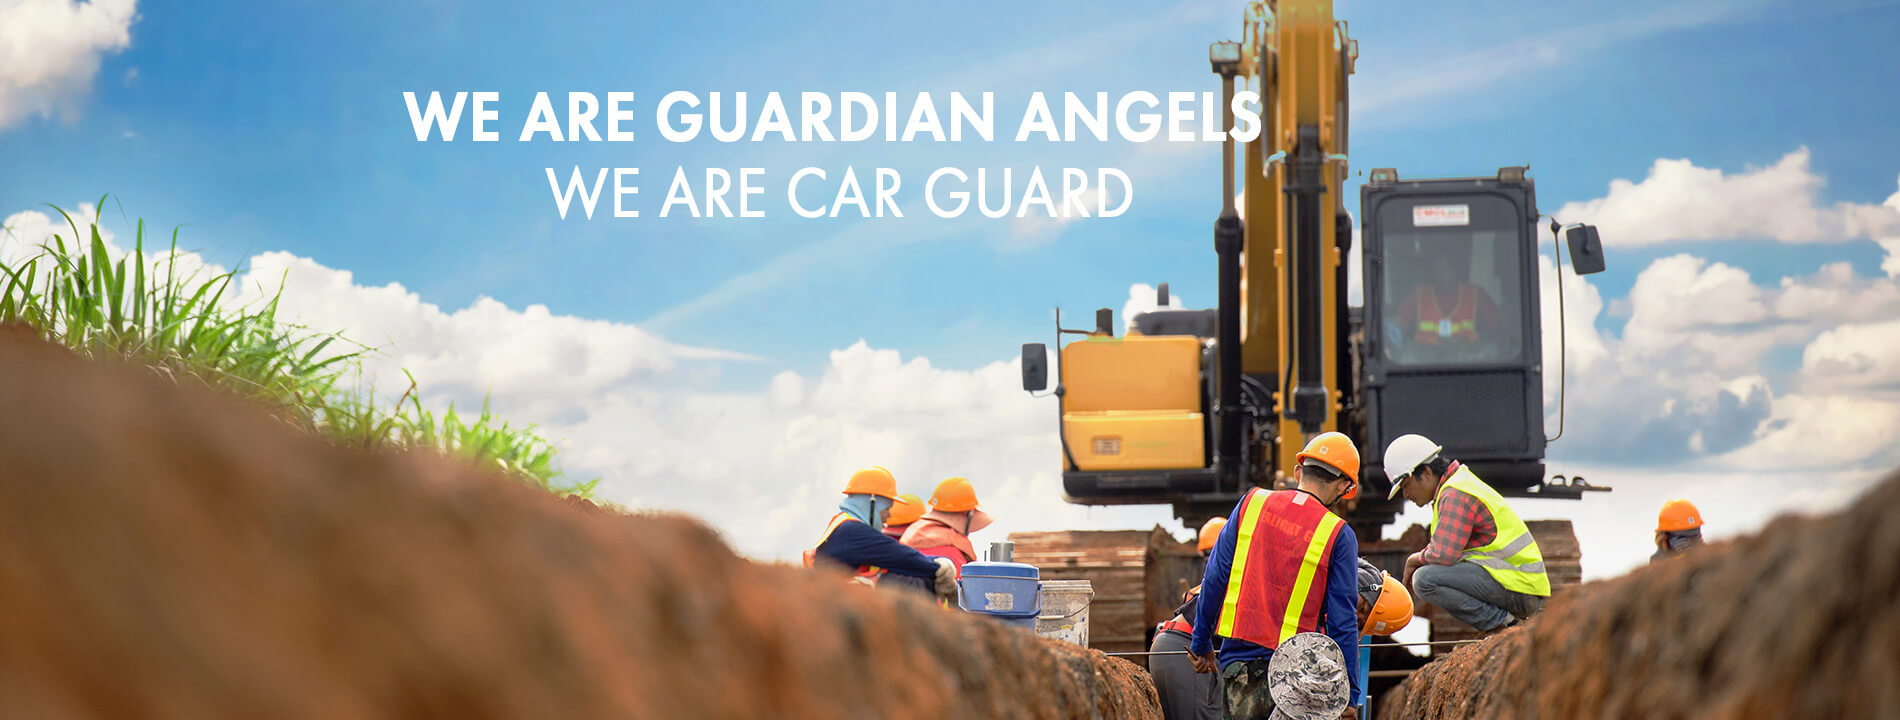 We are guardian angels - We are Car Guard